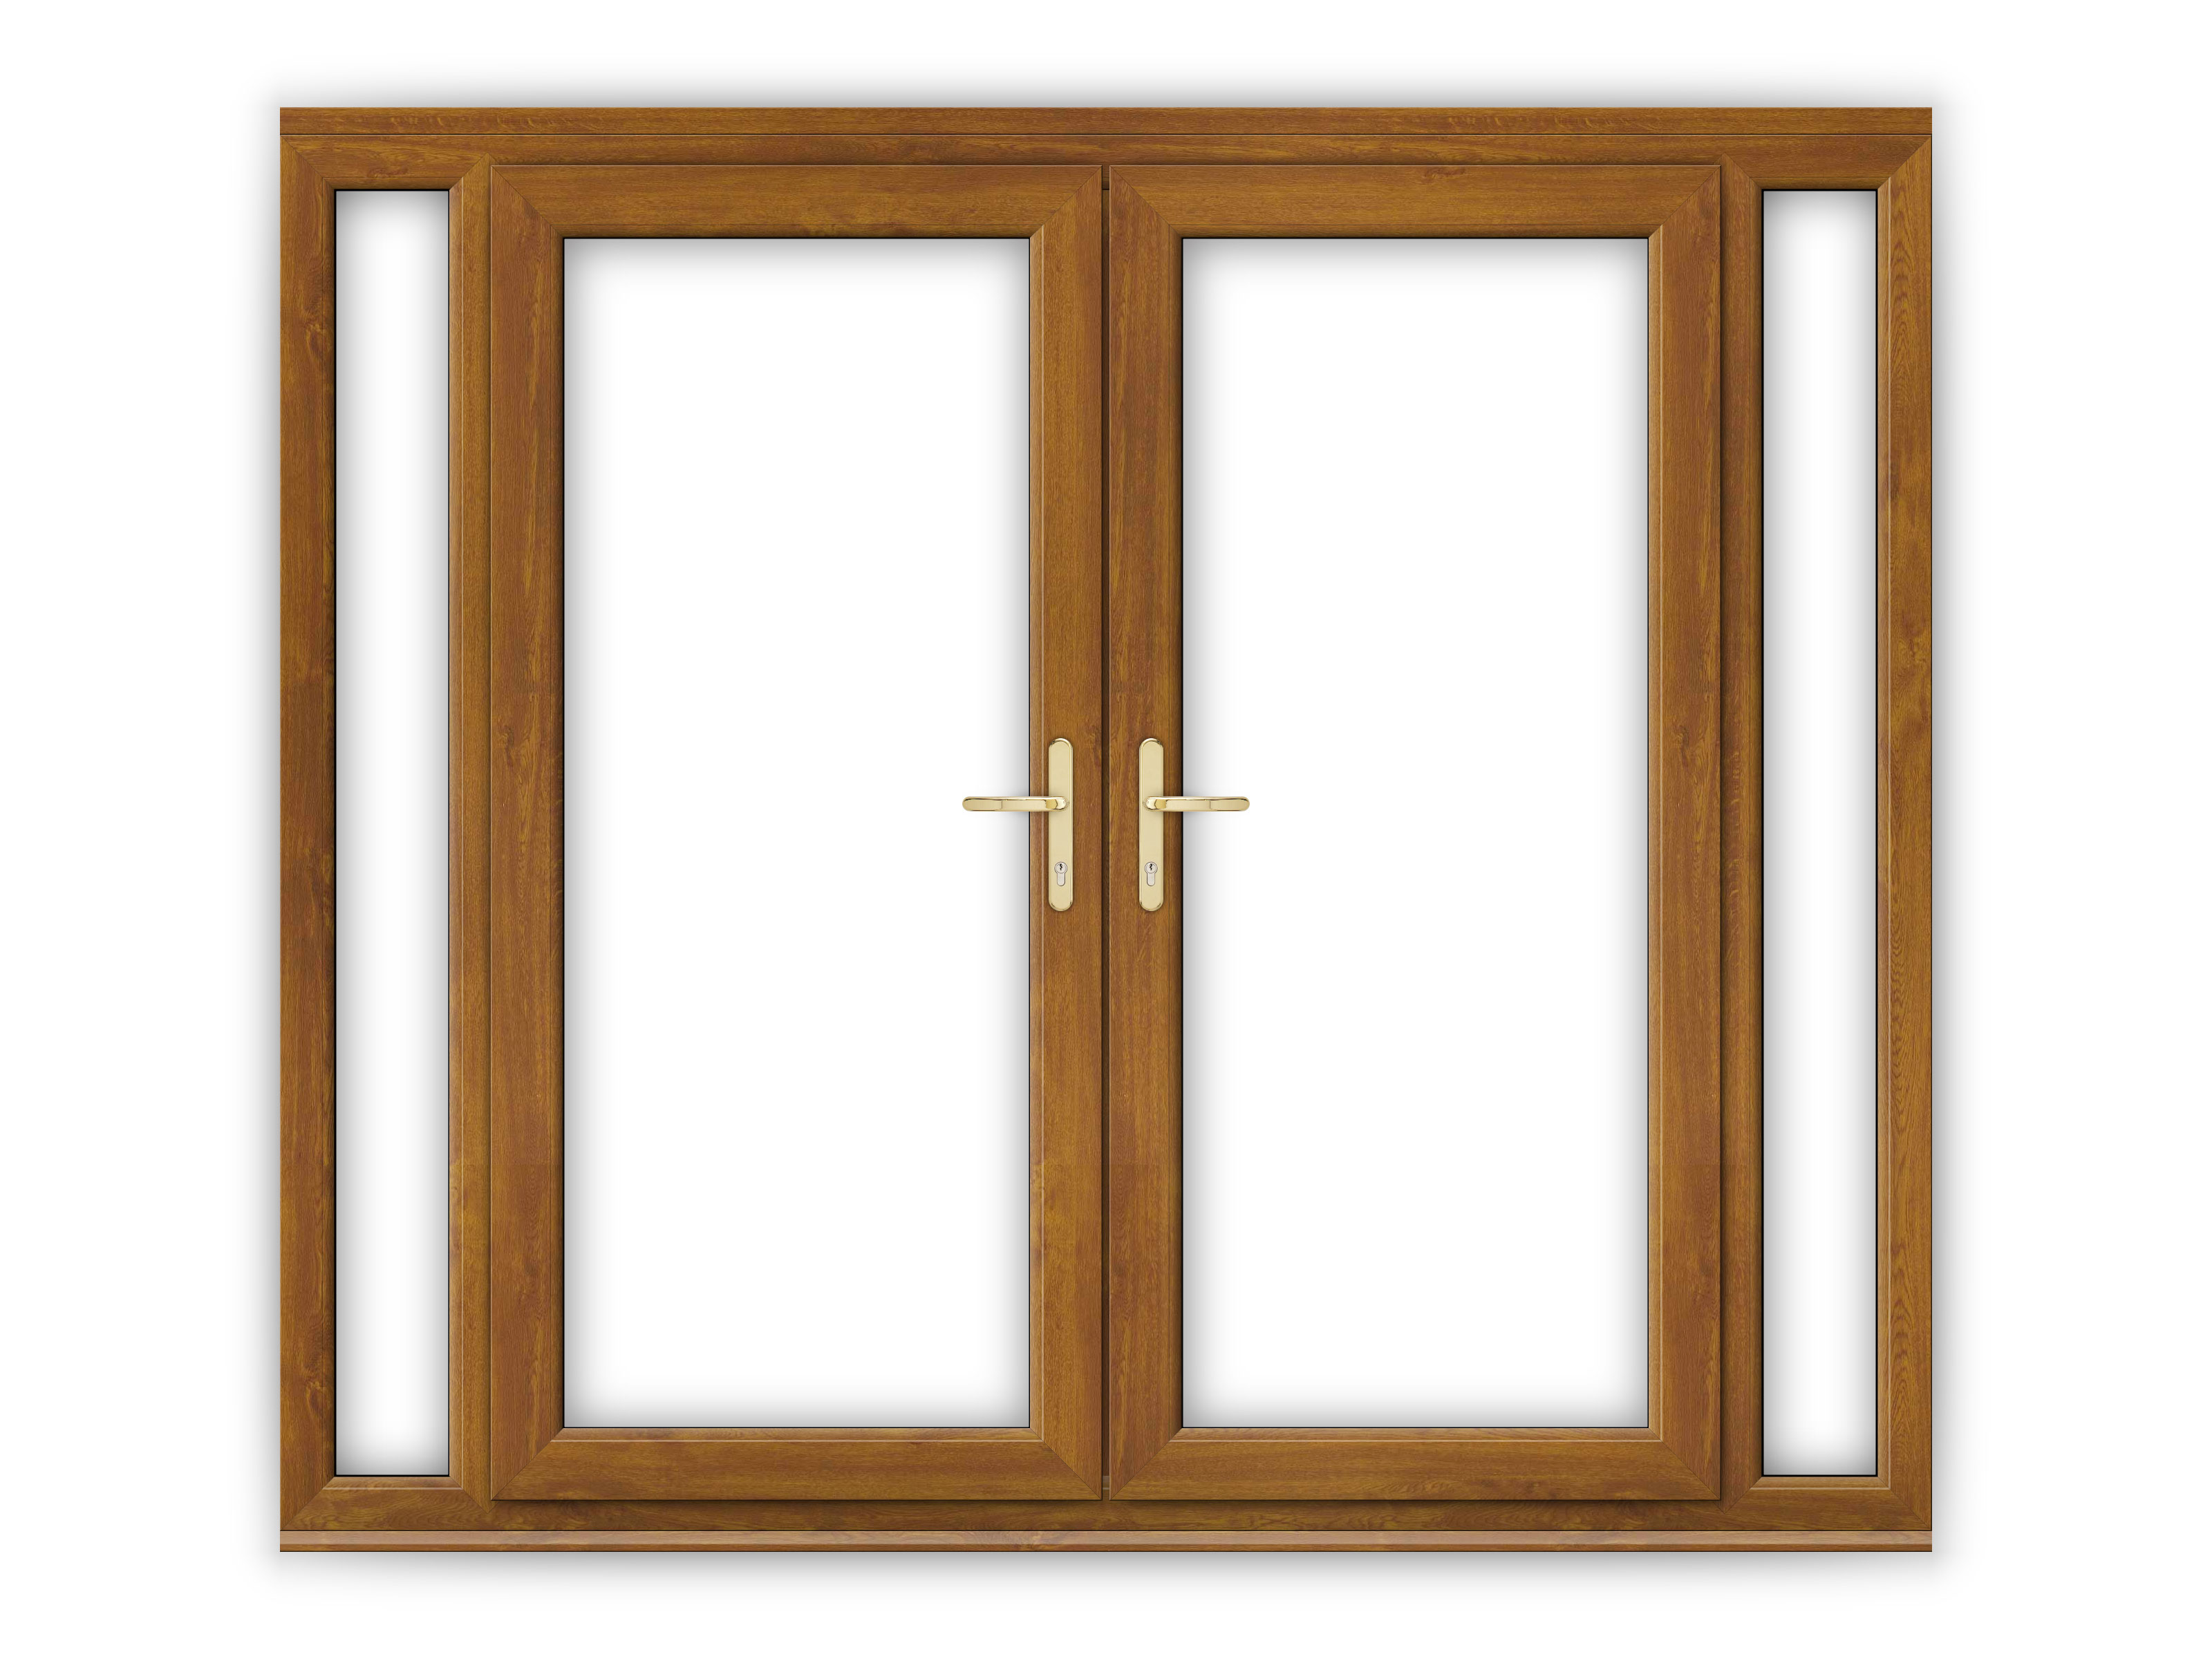 6ft golden oak upvc french doors with narrow side panels for Narrow french patio doors